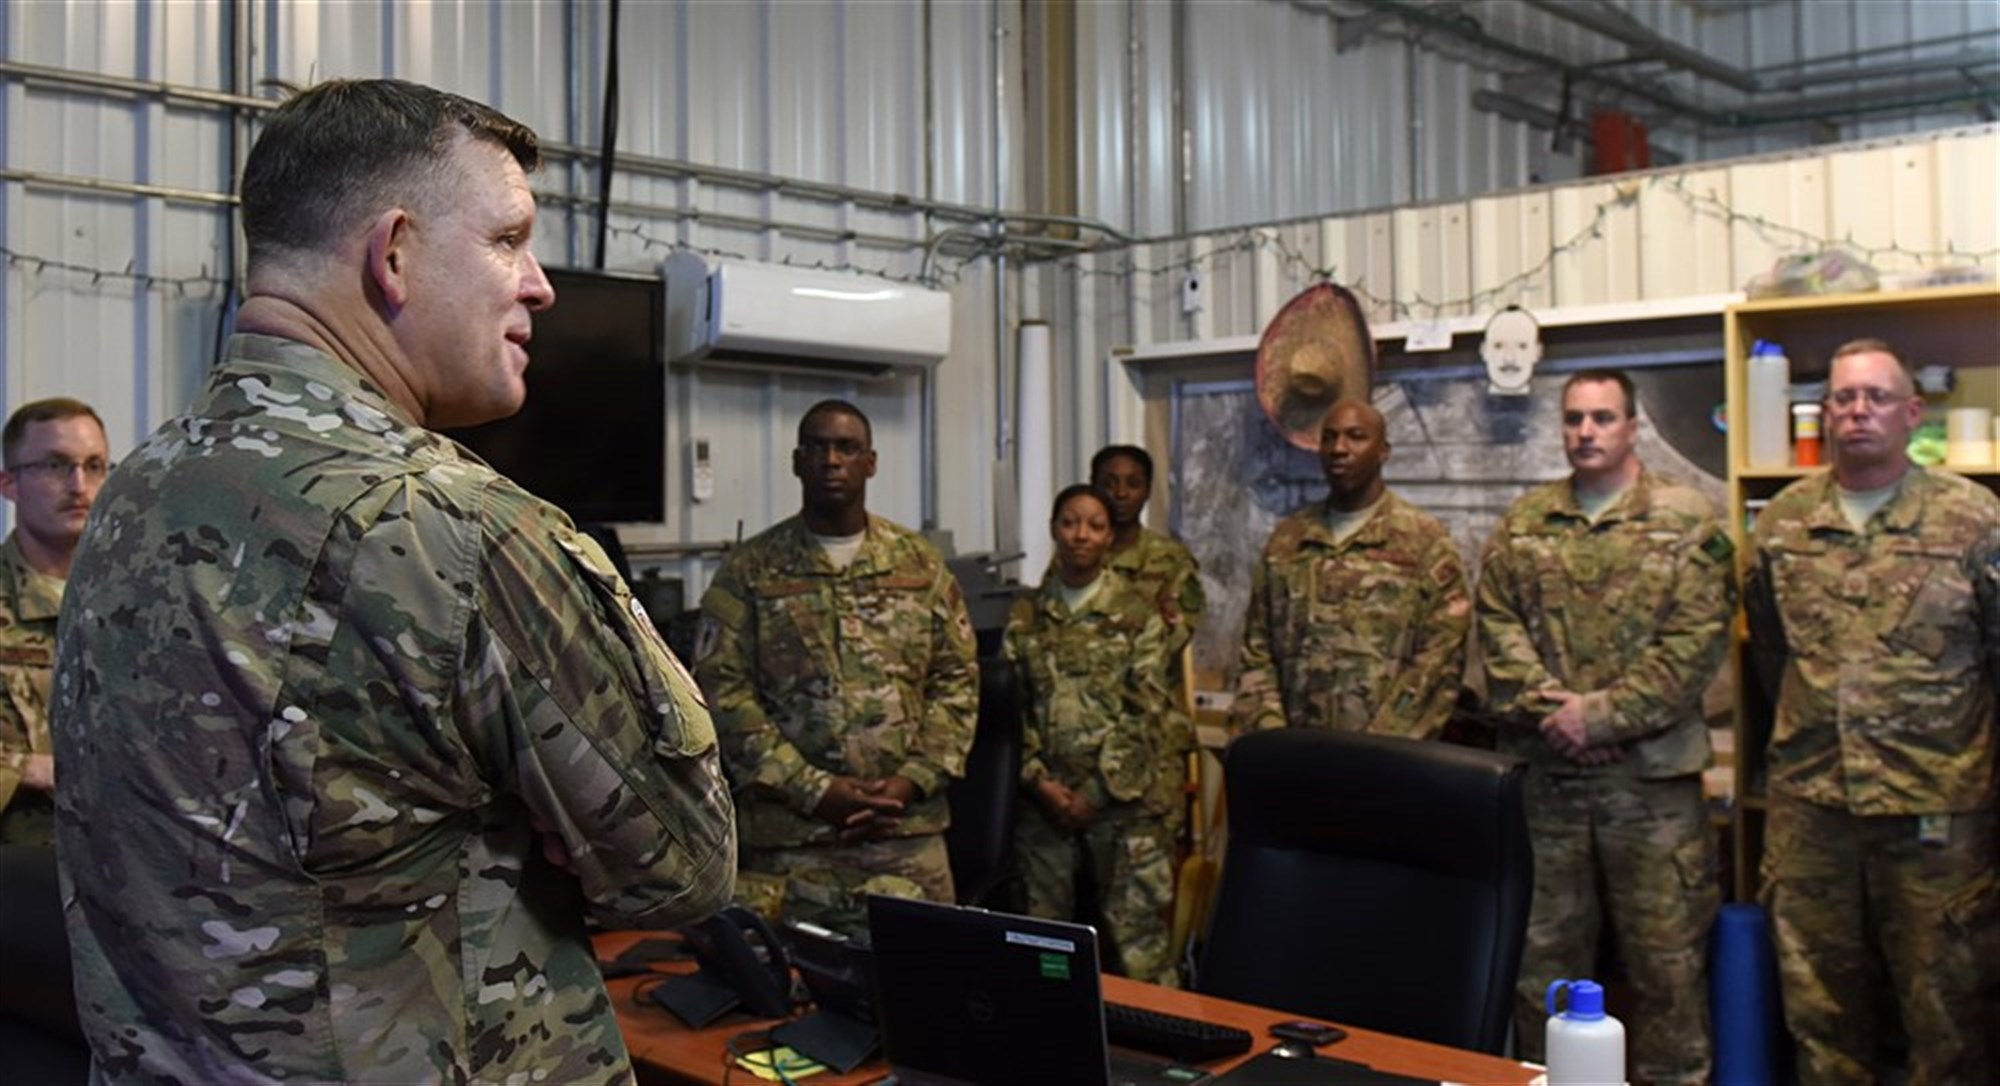 Gen. Frank Gorenc, U.S. Air Forces in Europe and Air Forces Africa commander, speaks with Airmen at Camp Lemonnier, Djibouti, Feb. 2, 2016. His goals were to see how the mission is going, solicit feedback on future plans, and learn more about the Airmen accomplishing the mission here. (U.S. Air Force photo by Staff Sgt. Kate Thornton)